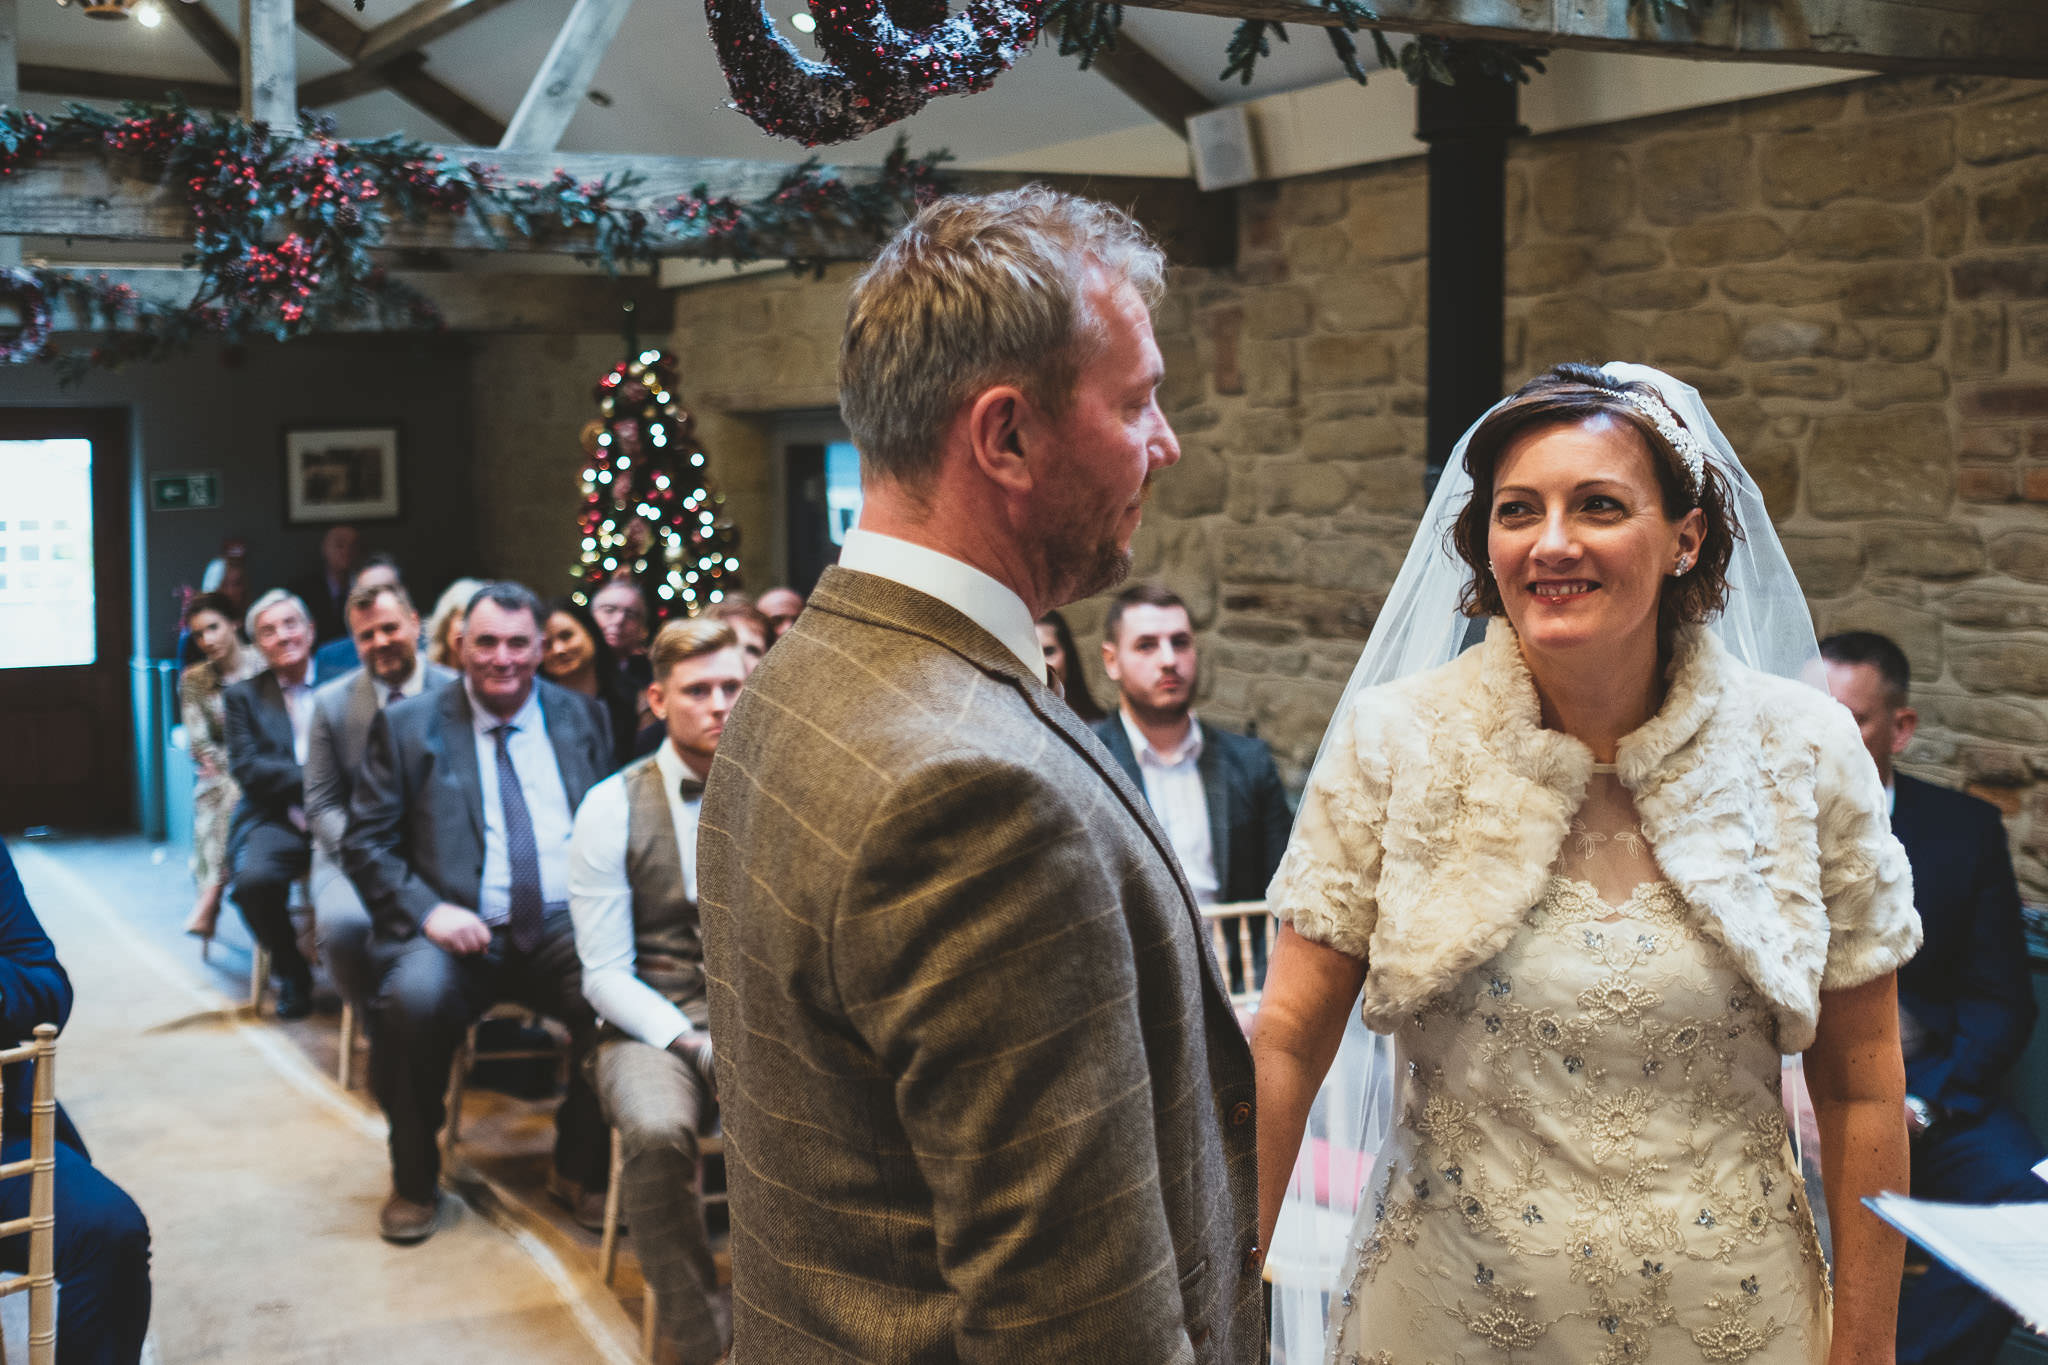 Bride smiling at groom during wedding ceremony in barn with wooden beams